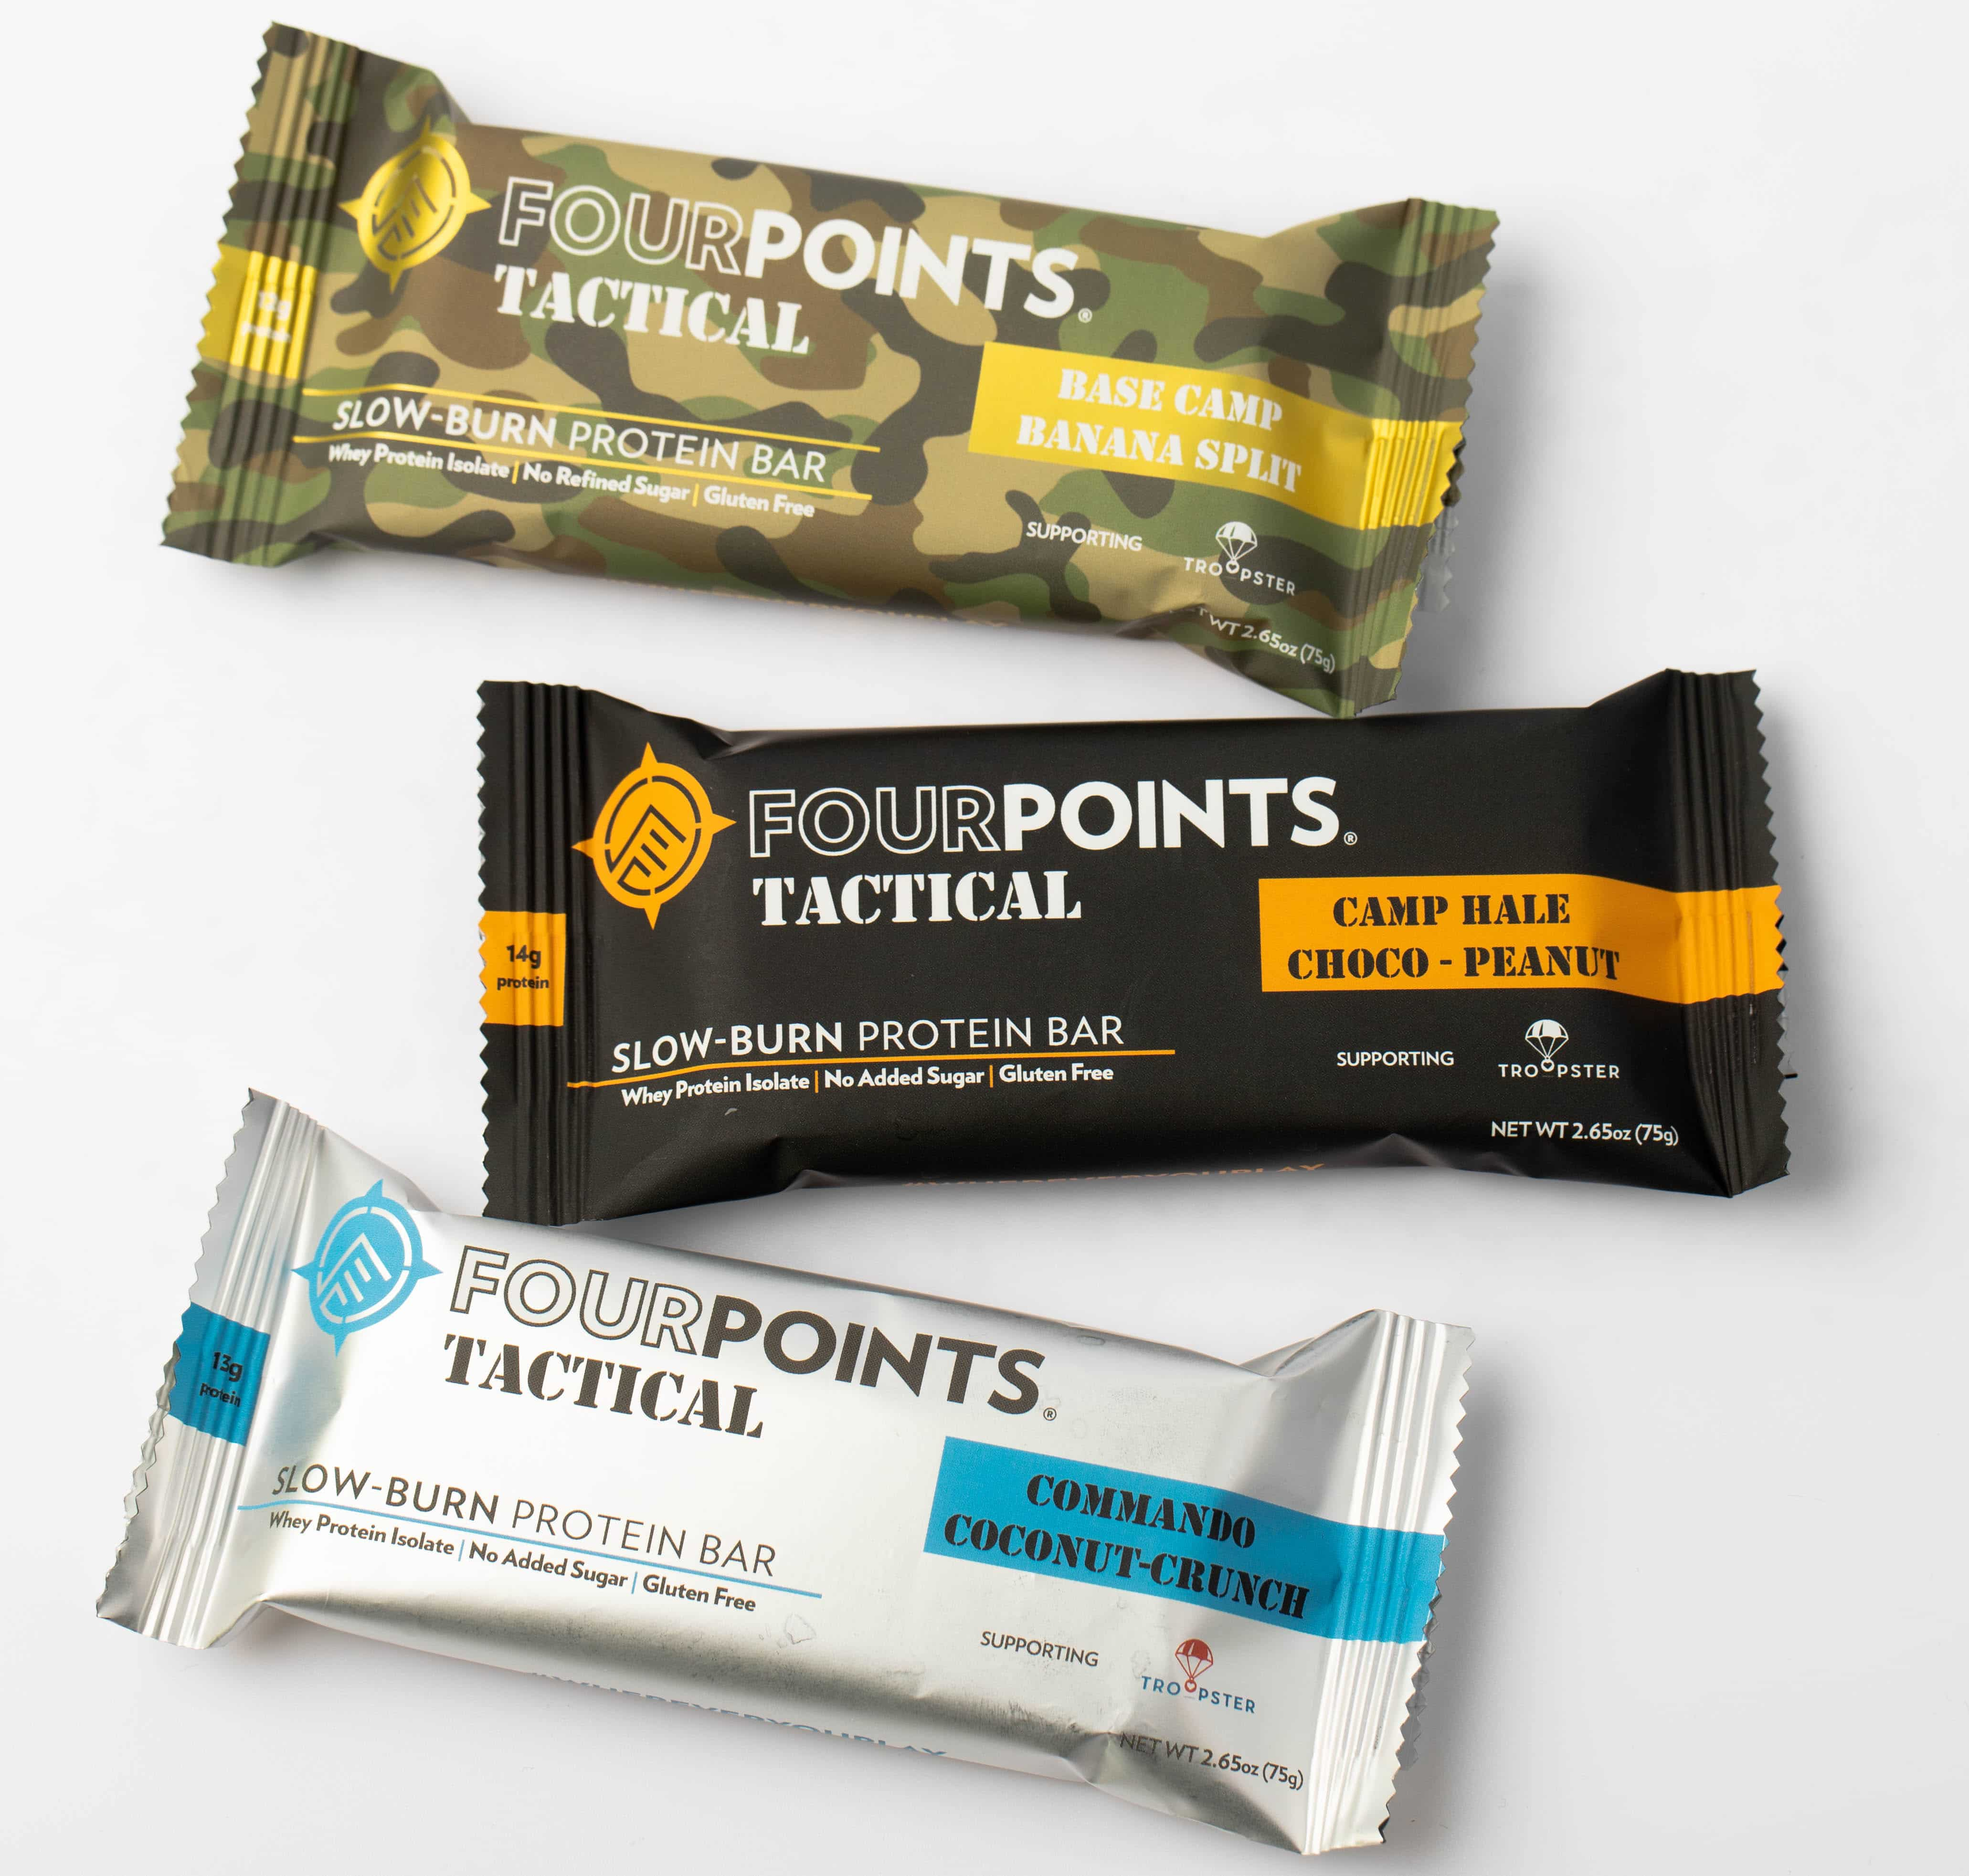 Fourpoints Introduces Tactical Protein Bars